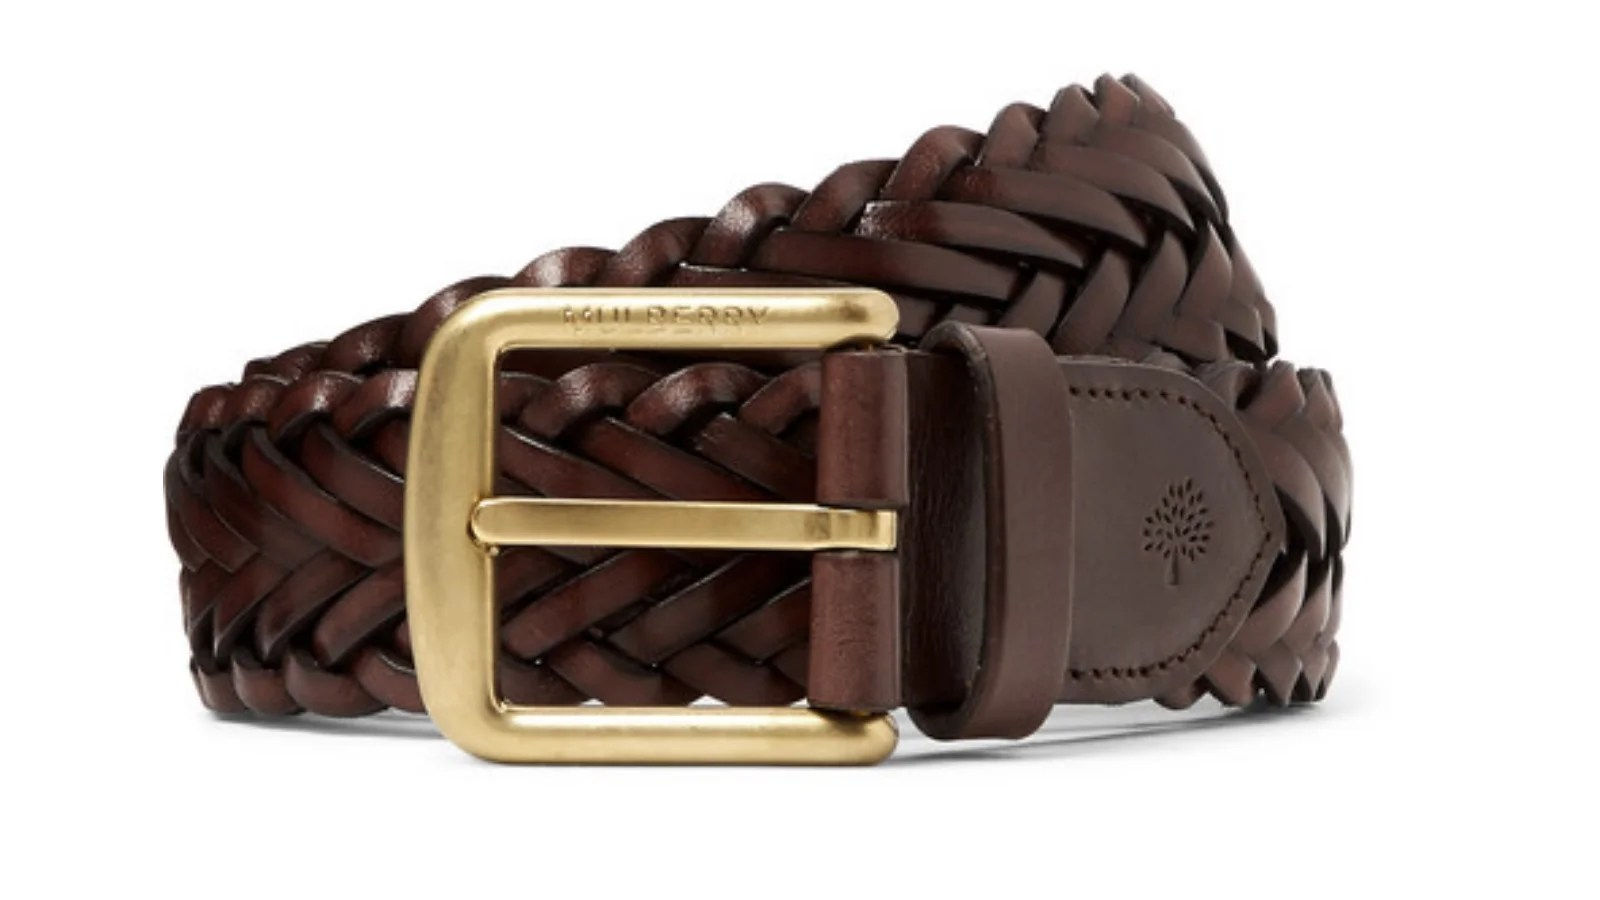 Le Meilleur Best Belts For Men The Best Plain Woven And Embroidered Ce Mois Ci